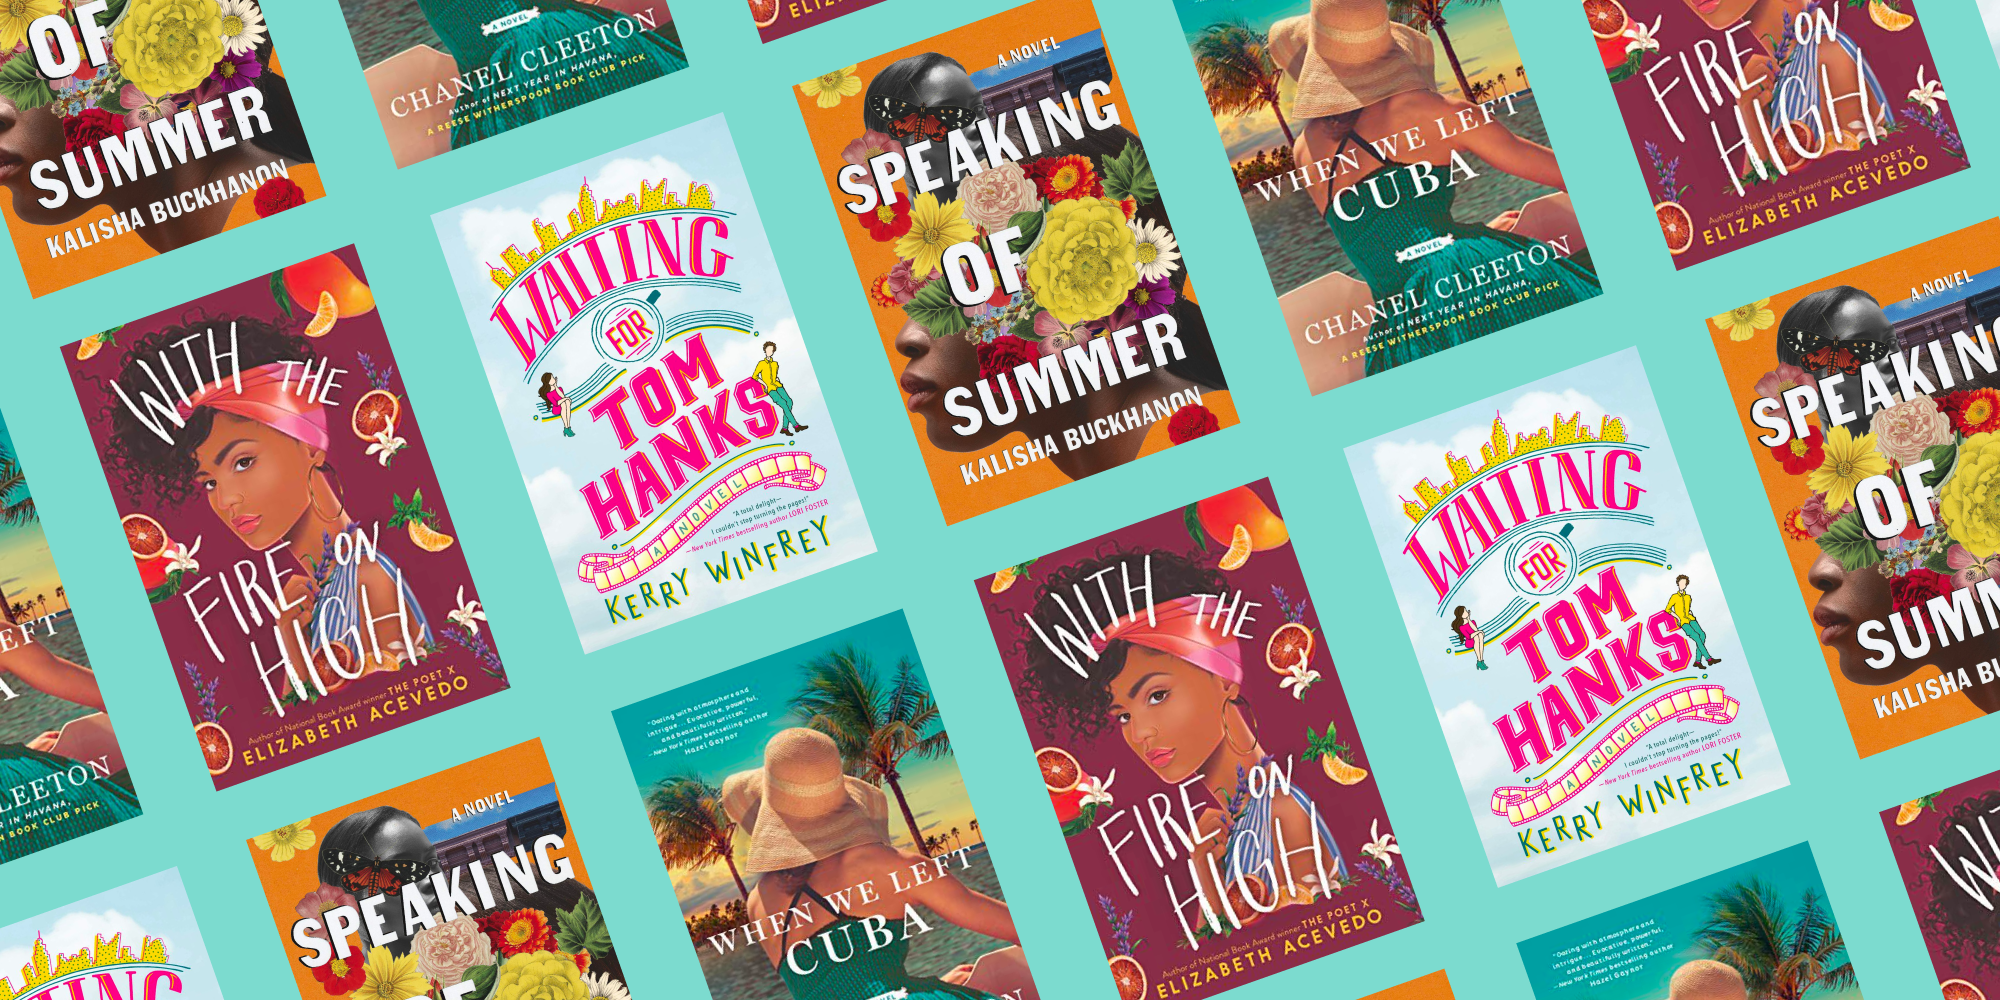 28 Best Beach Reads of 2019 - New Beach Books to Read